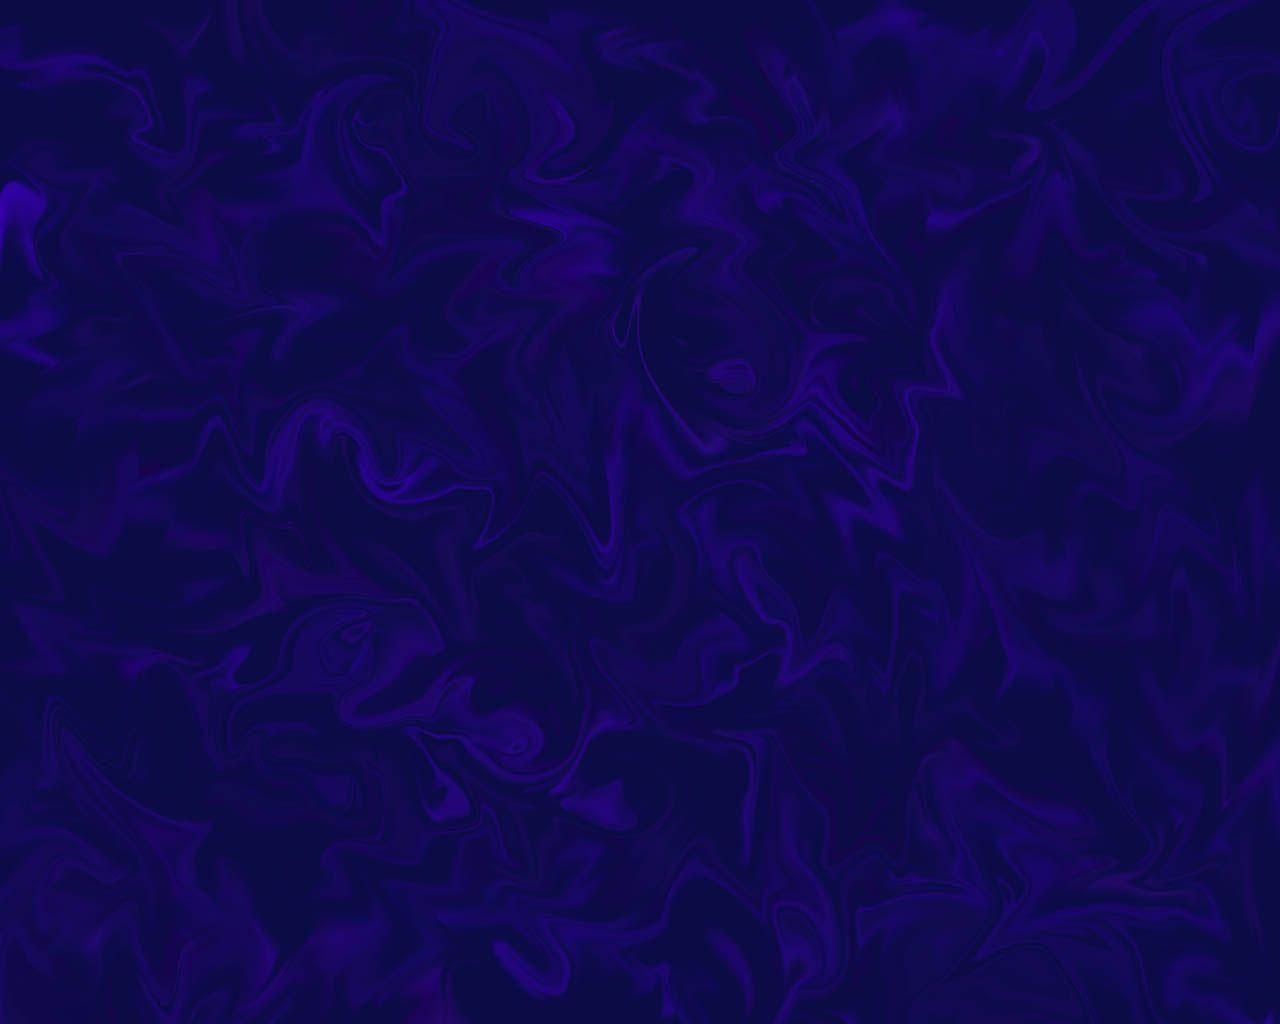 Dark Blue Backgrounds Image 1280x1024